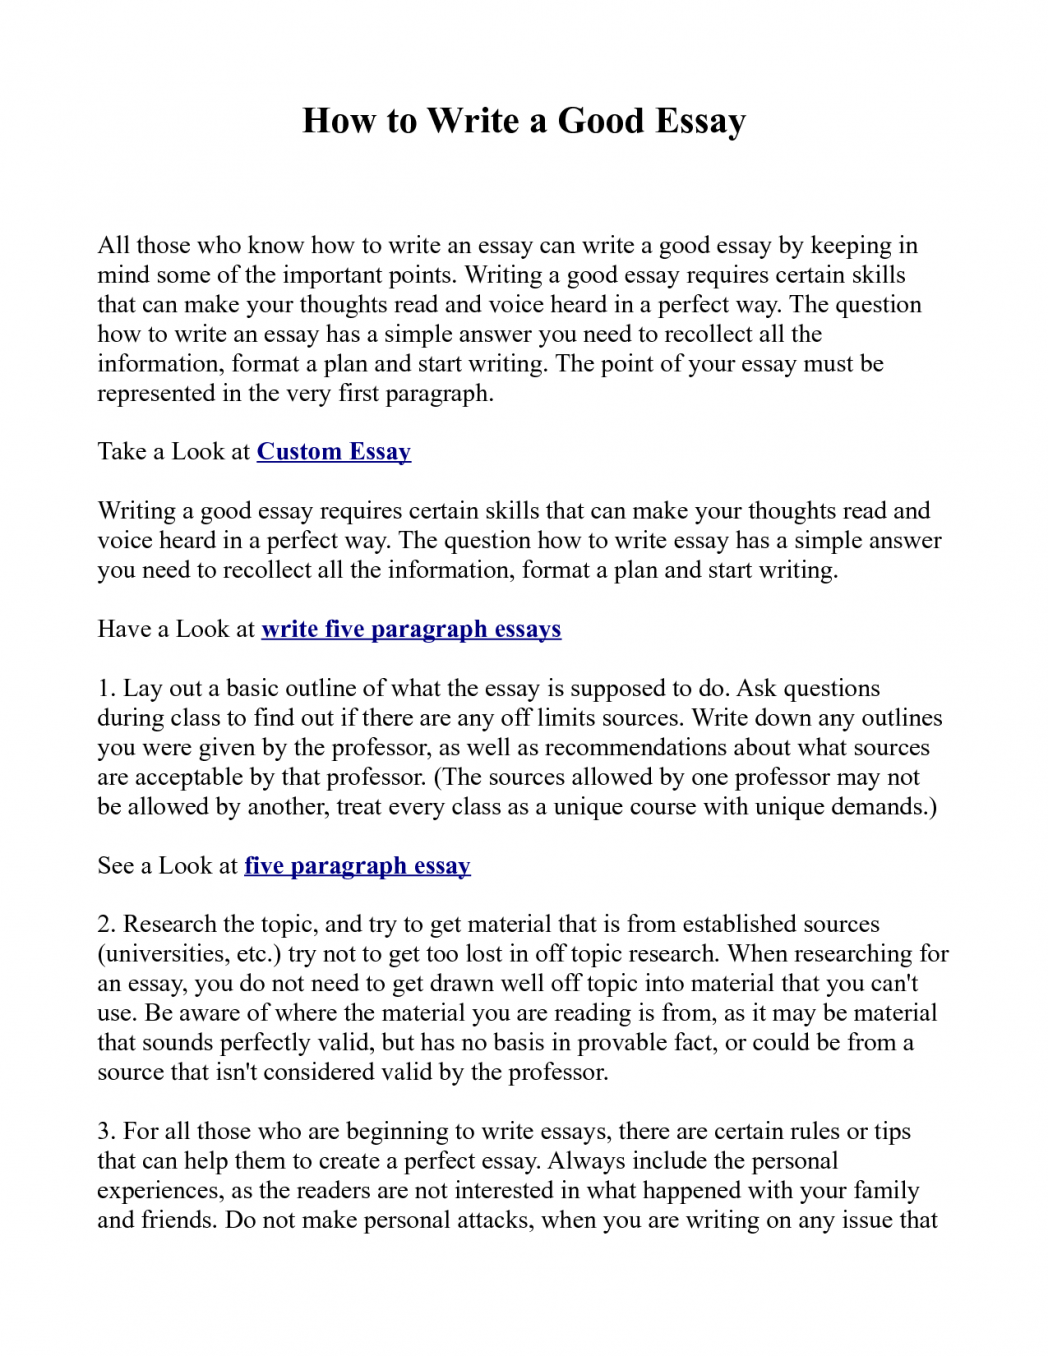 006 Write Essays How To An Excellent Essay The Perfect Easy Way Ex1id Best 1048x1356 Astounding A Poetry For Ap Lit About Yourself Paper In Spanish On Word Full